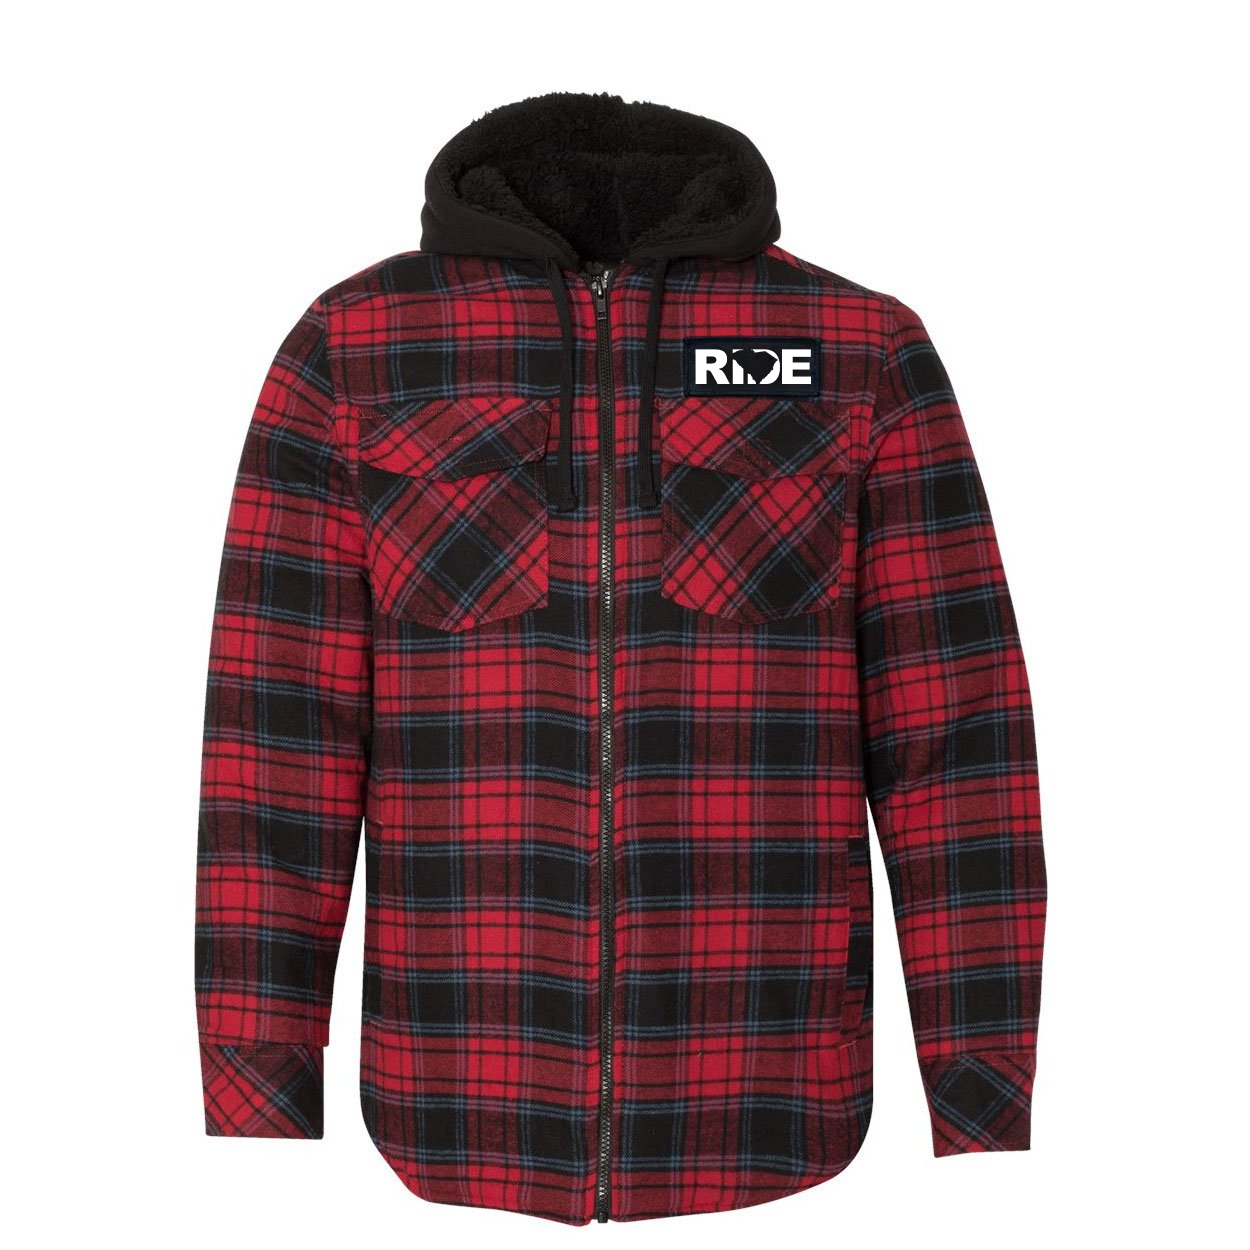 Ride South Carolina Classic Unisex Full Zip Woven Patch Hooded Flannel Jacket Red/Black Buffalo (White Logo)